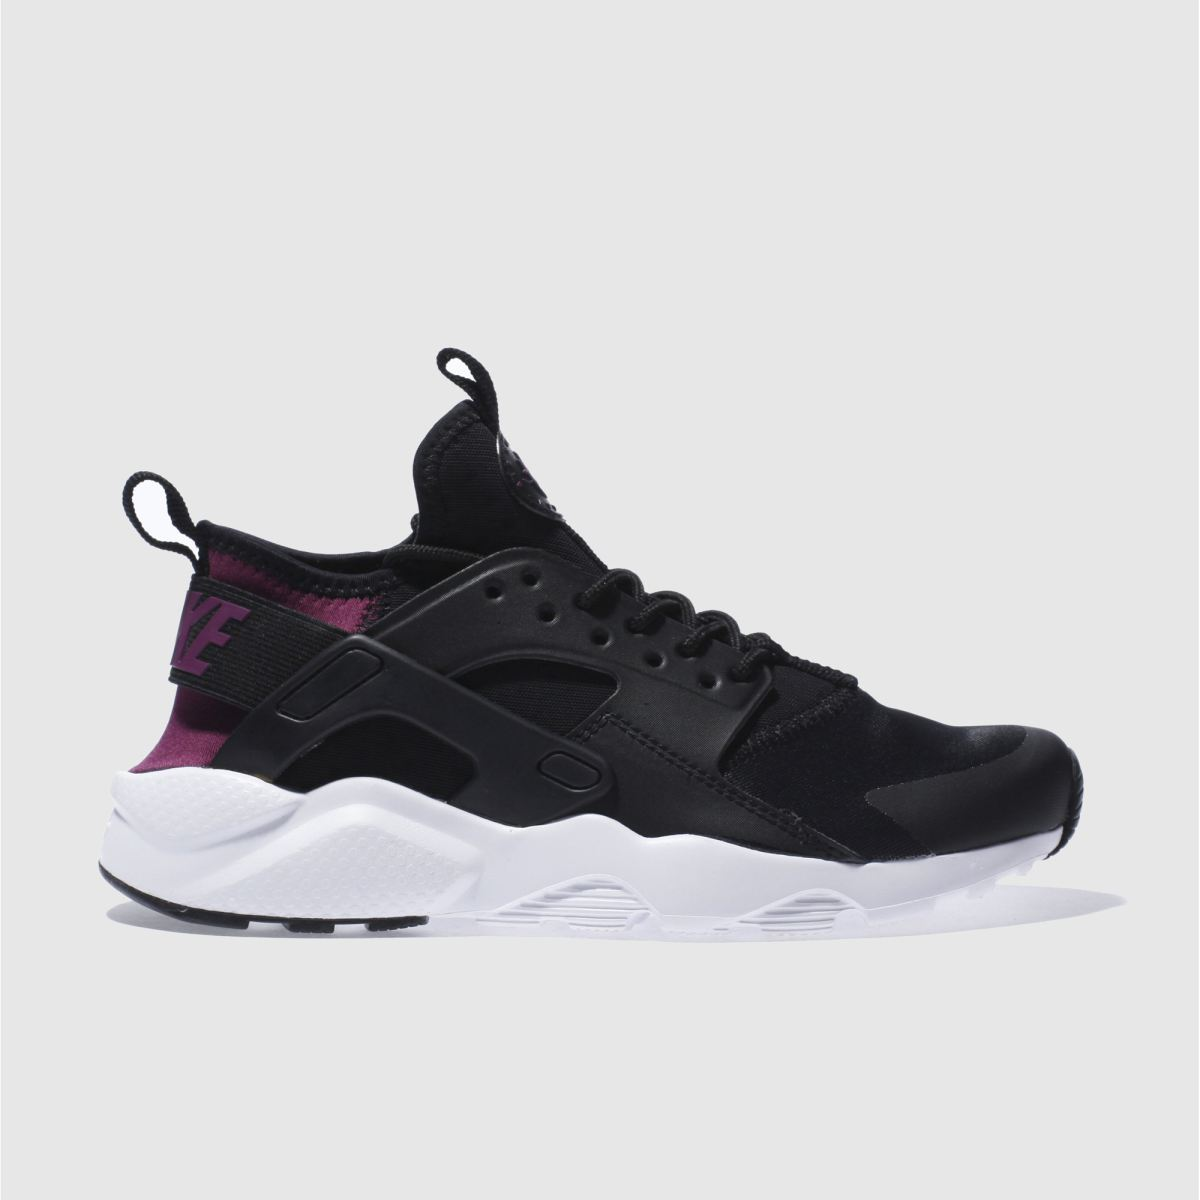 nike black & purple huarache run ultra Girls Youth Trainers